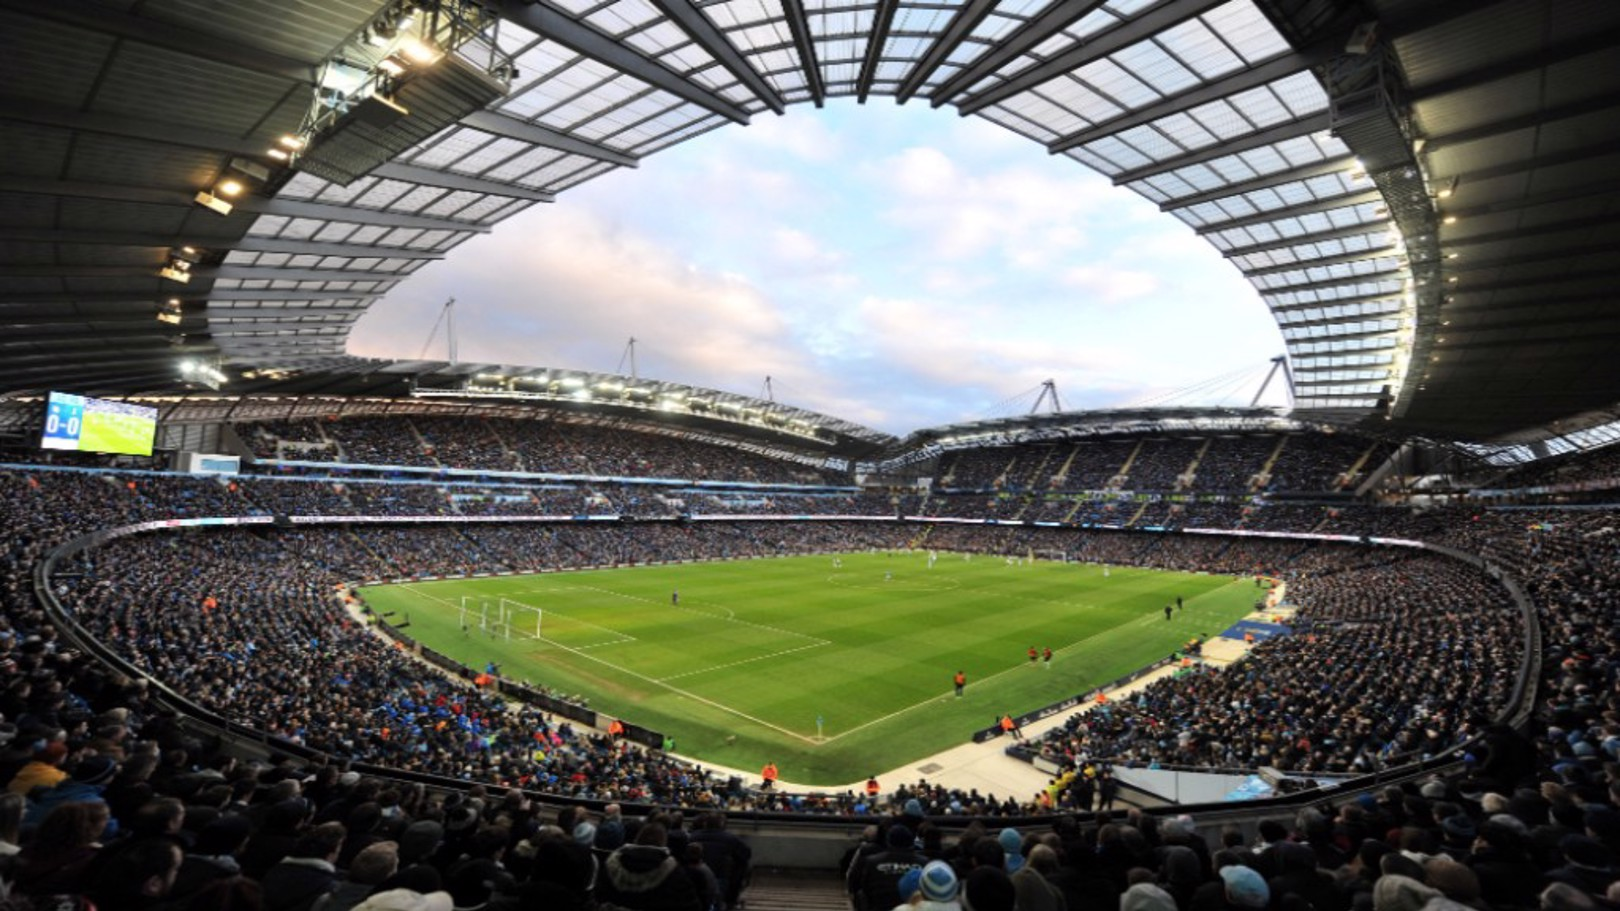 Manchester City Football Club is disappointed, but regrettably not surprised, by the sudden announcement of the referral to be made by the CFCB IC Chief Investigator Yves Leterme